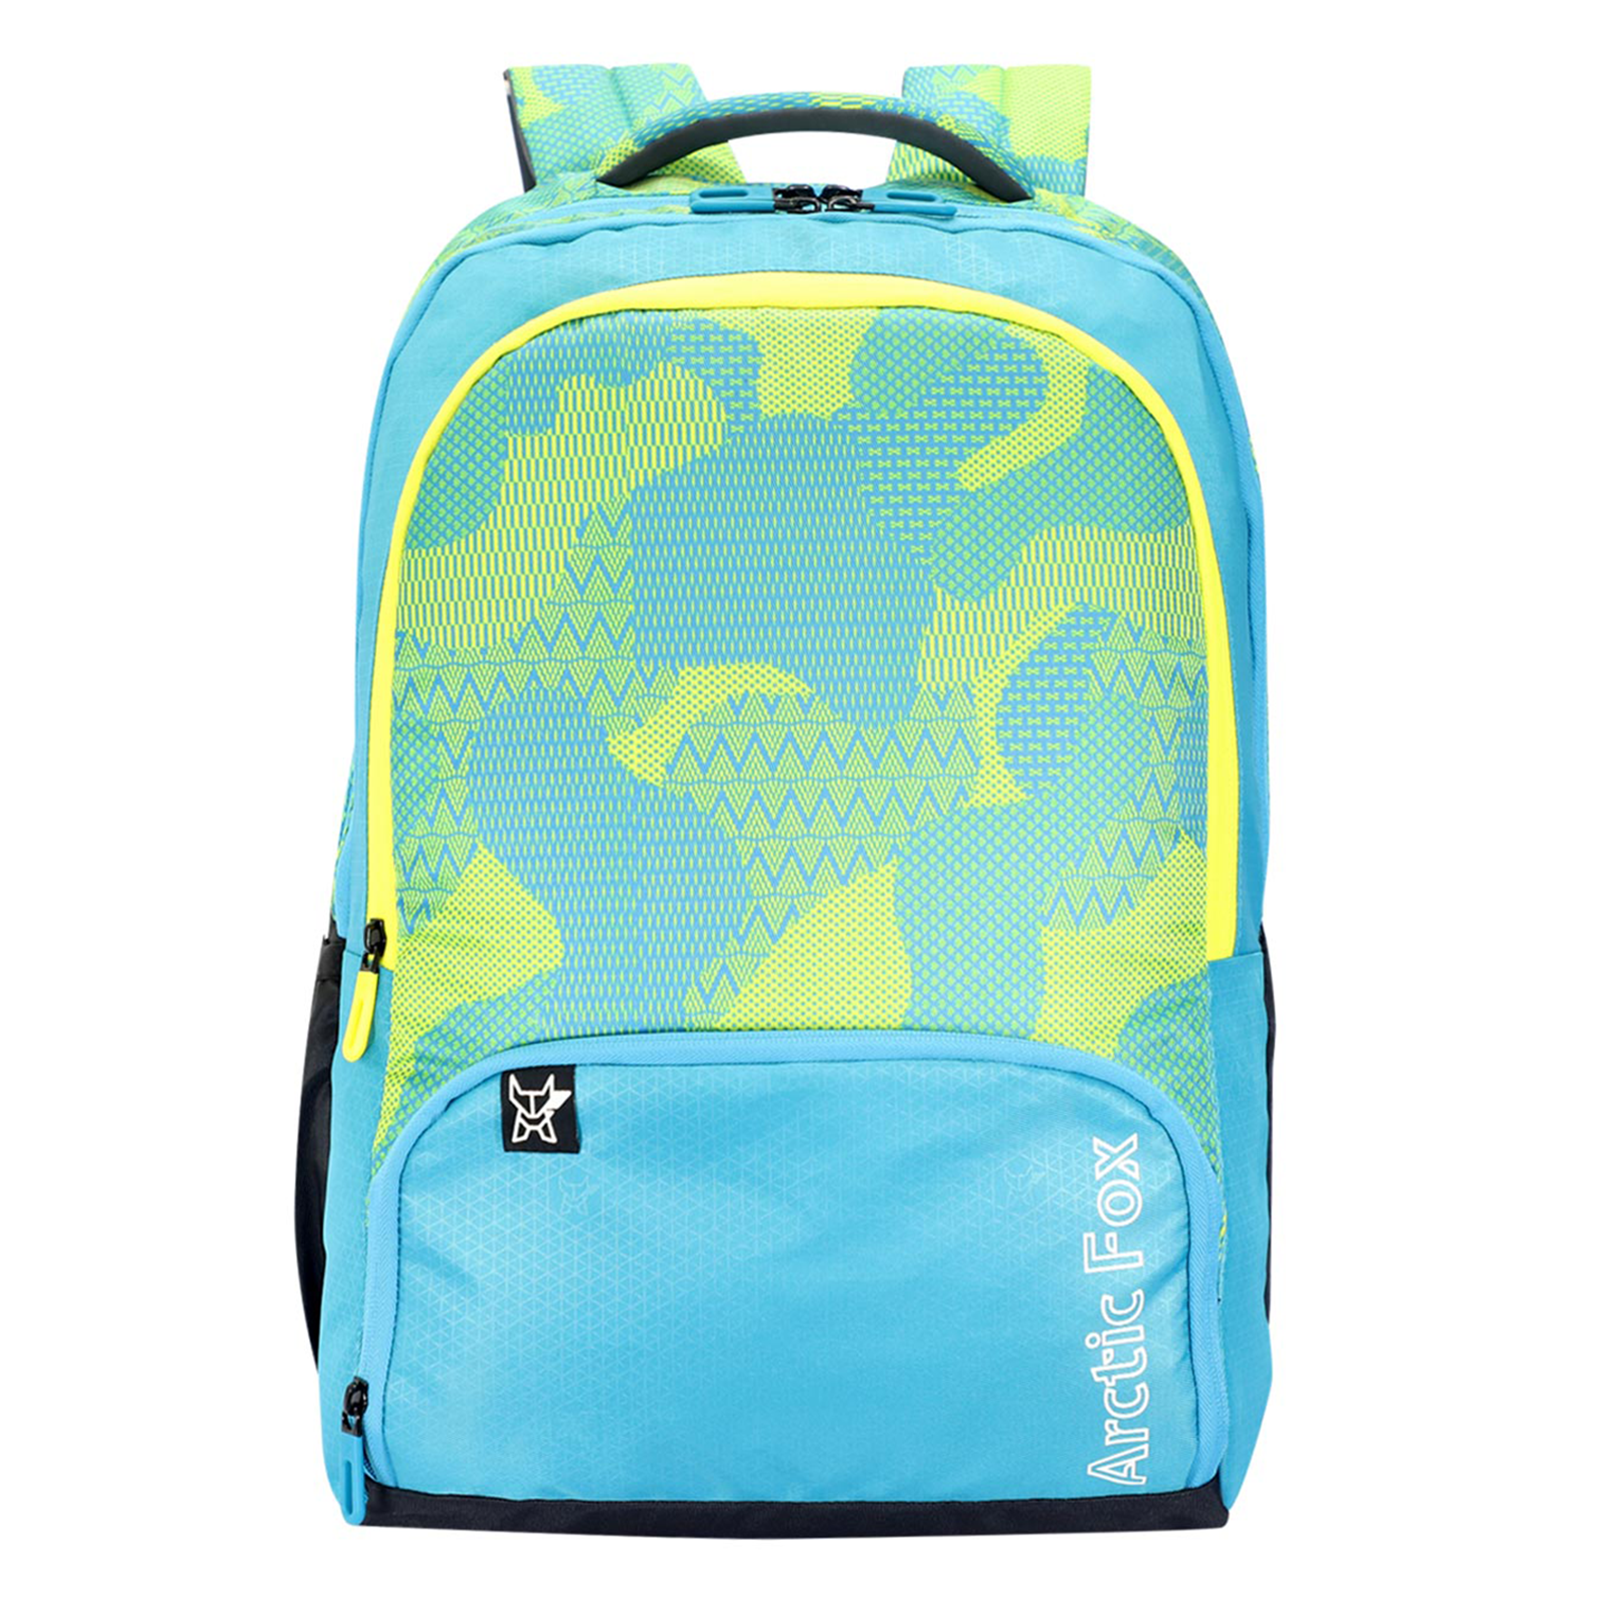 Arctic Fox Collage 32 Litres PU Coated Polyester Laptop Backpack (Smart Organizer, FUNBPKCSEON092032, Caribbean Sea)_1